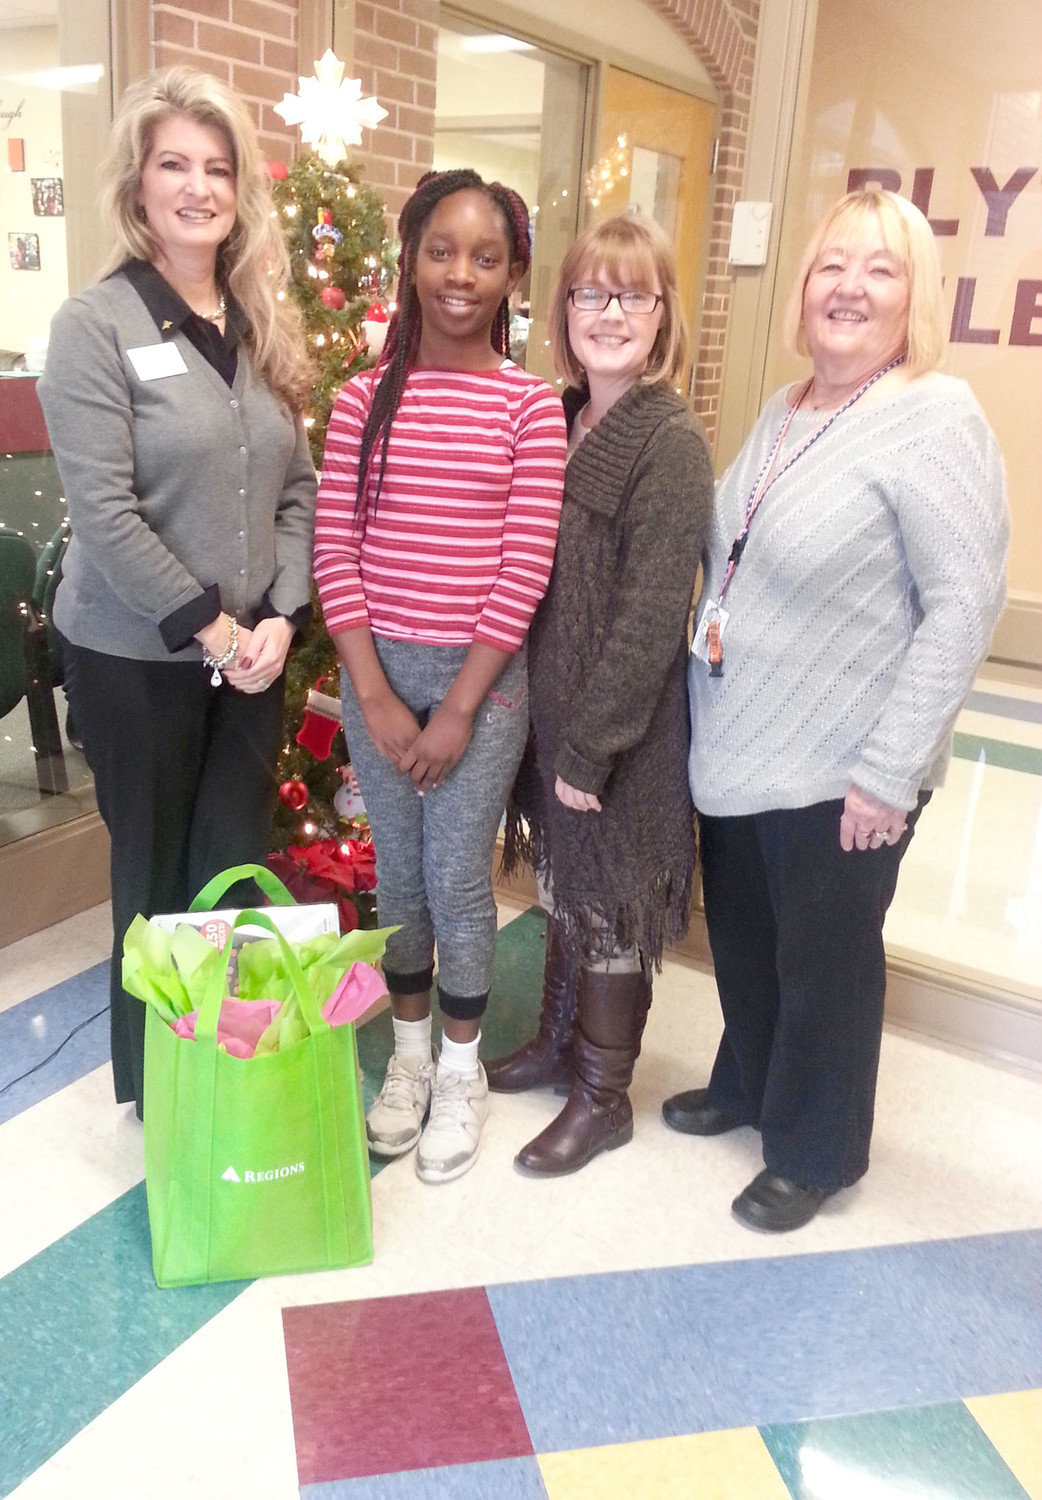 Regions sponsored a Holiday Card Contest with BEST Partner Blythe-Bower Elementary School. Gathered are Lee Loveridge, Regions Bank; fifth-grade student winner Allanah Hinkson; Nicki Johnson, Blythe-Bower teacher; and Linda Tyler, family engagement coordinator.